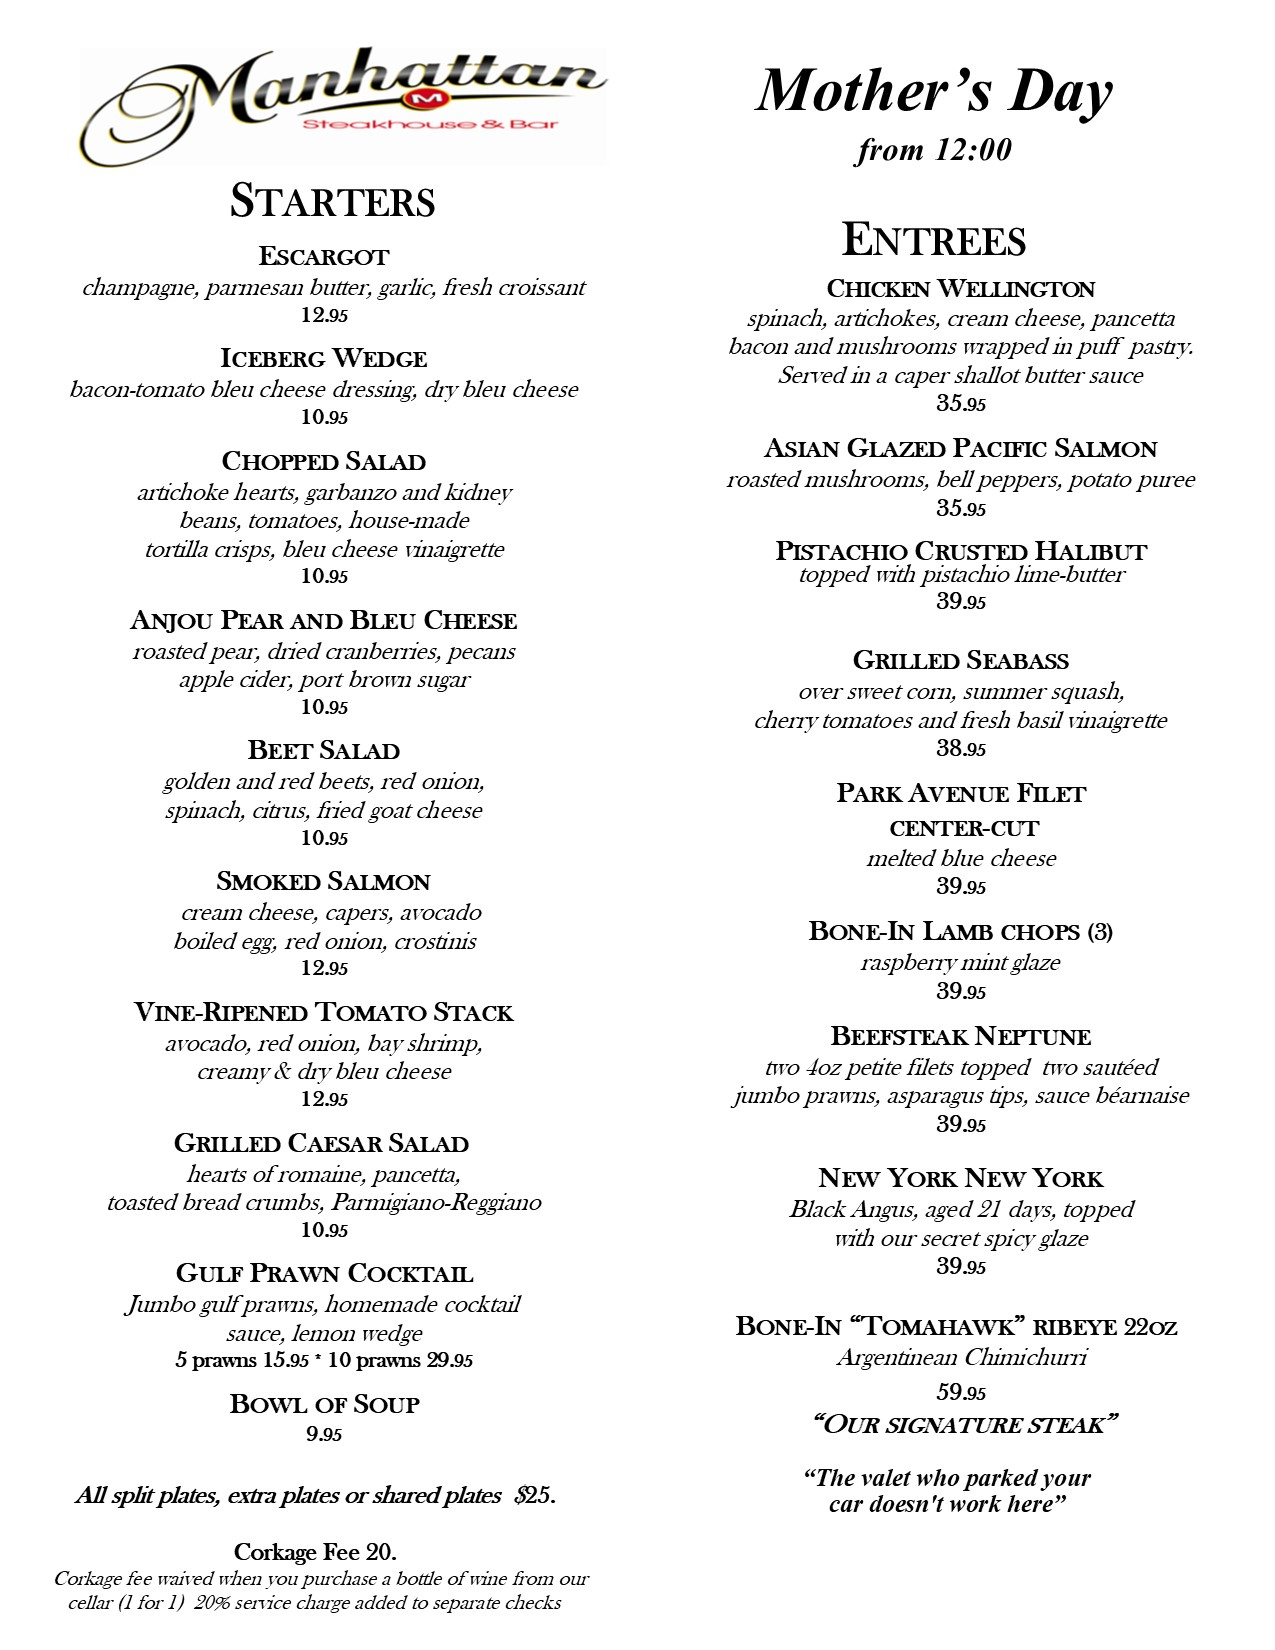 2018 Mothers day menu 4.18.18